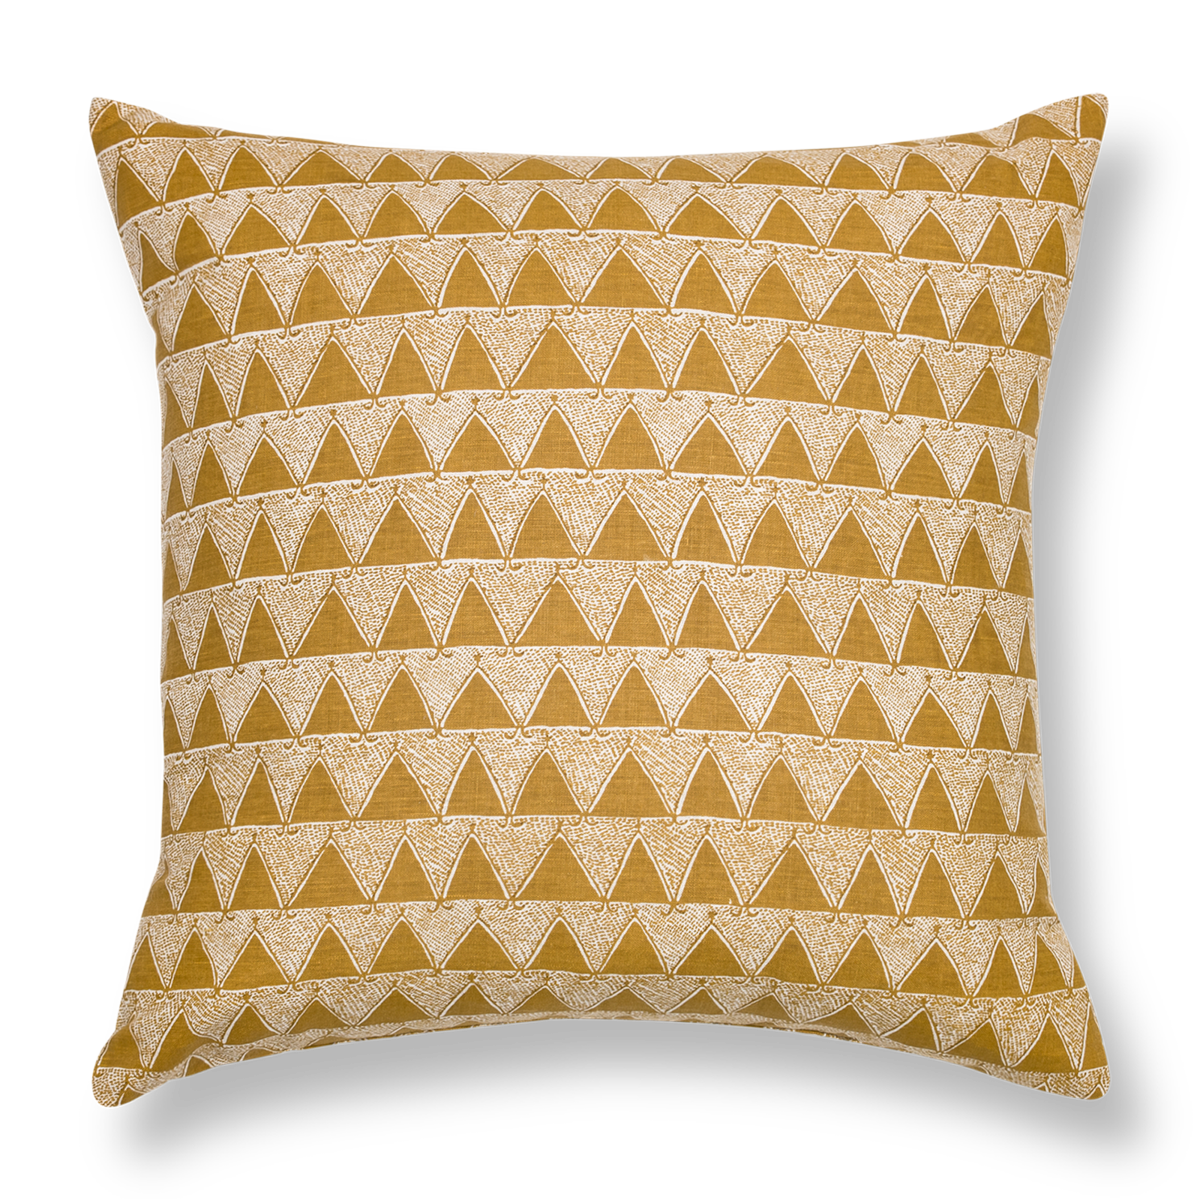 Pillow product picture